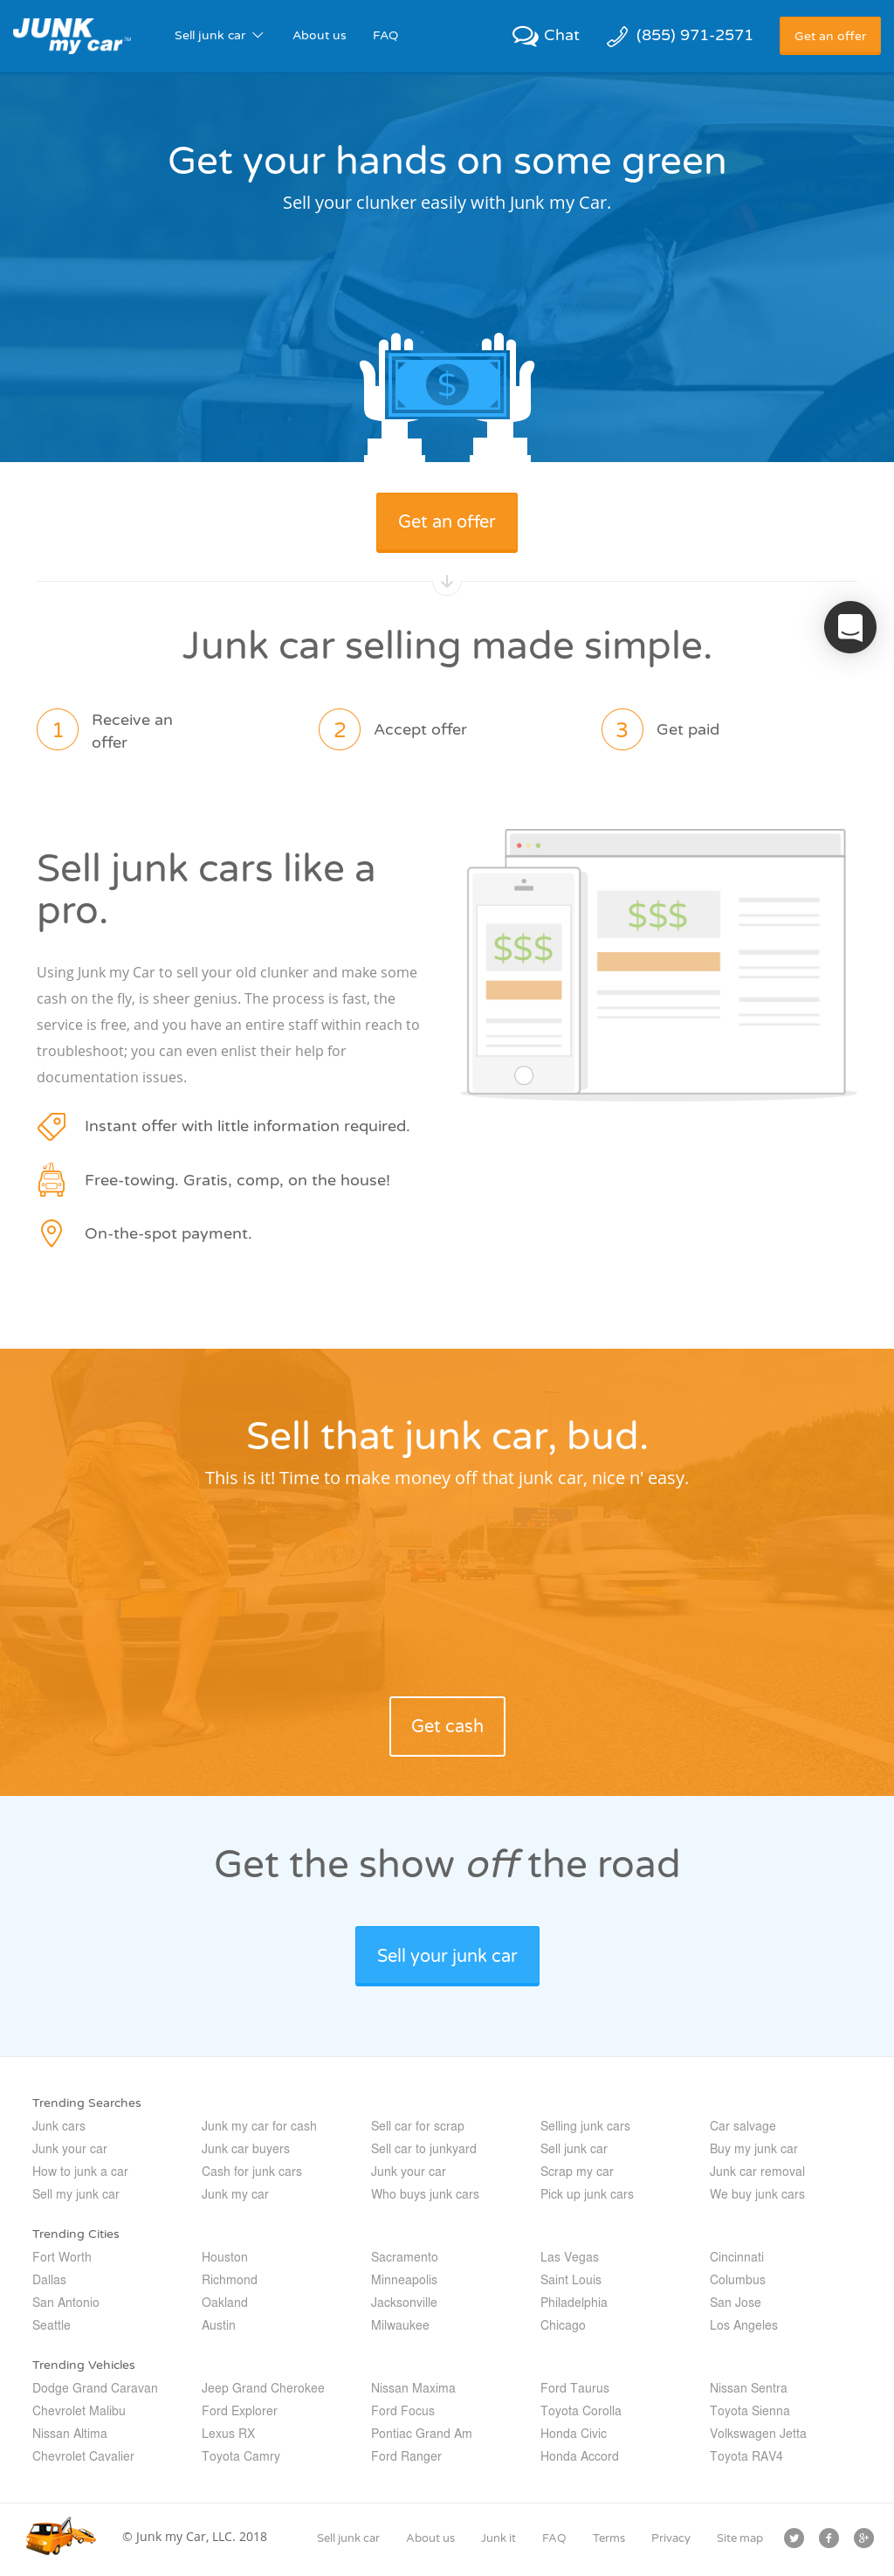 JUNK MY CAR Competitors, Revenue and Employees - Owler Company Profile